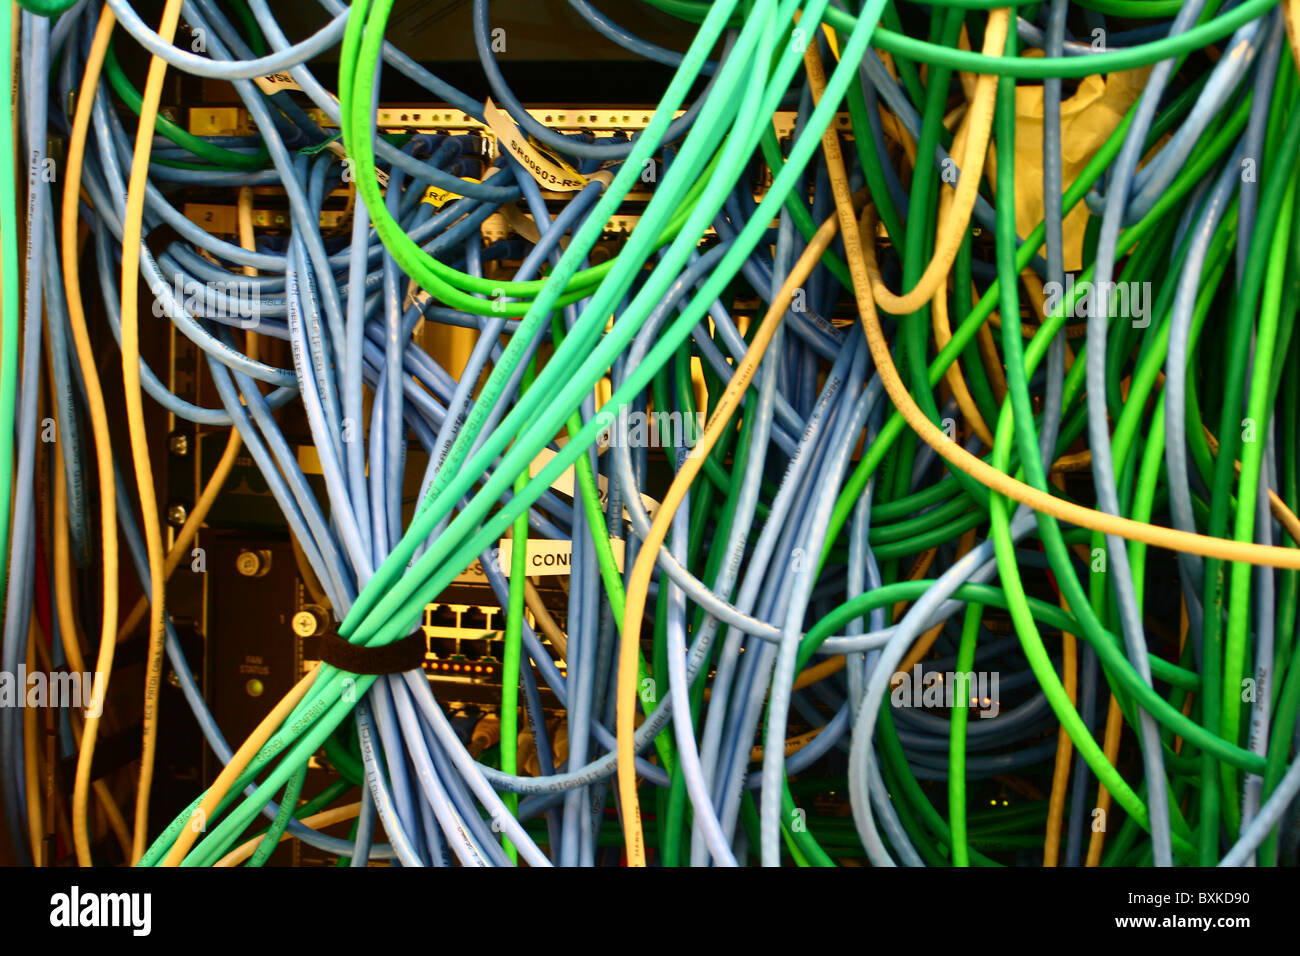 ethernet cables connected to a switch wiring harness stock photo rh alamy com